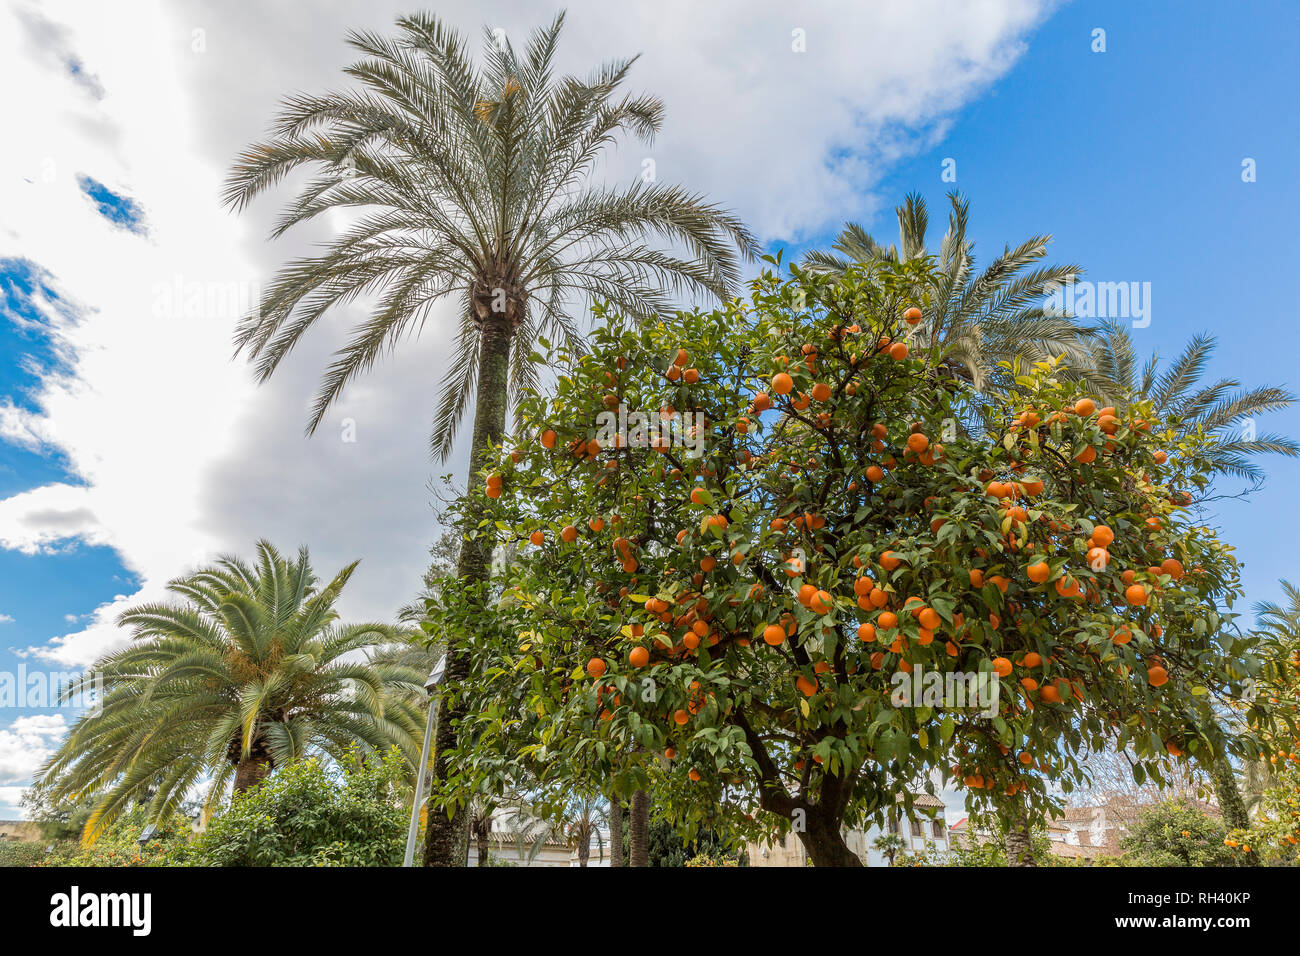 Orange tree with oranges and palm trees in a garden, wonderful and sunny day with a blue sky in Cordoba Spain - Stock Image